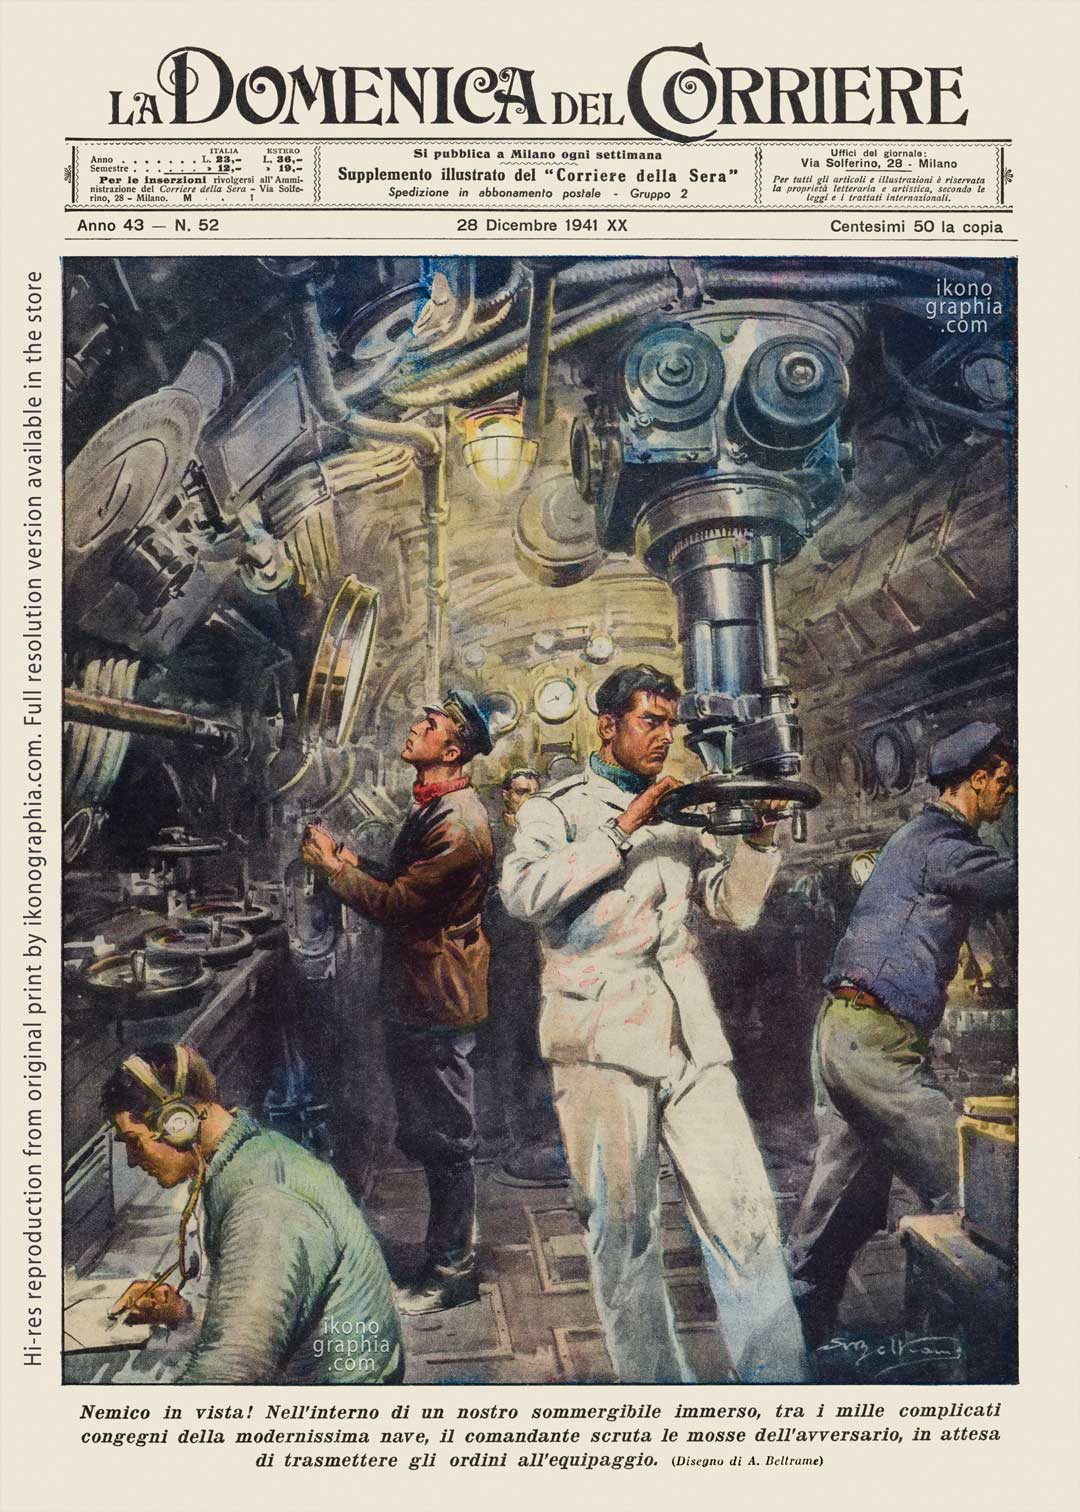 """A plate by Achille Beltrame for """"La Domenica del Corriere"""". The commander of an Italian submarine at the periscope. The enemy in sight!"""